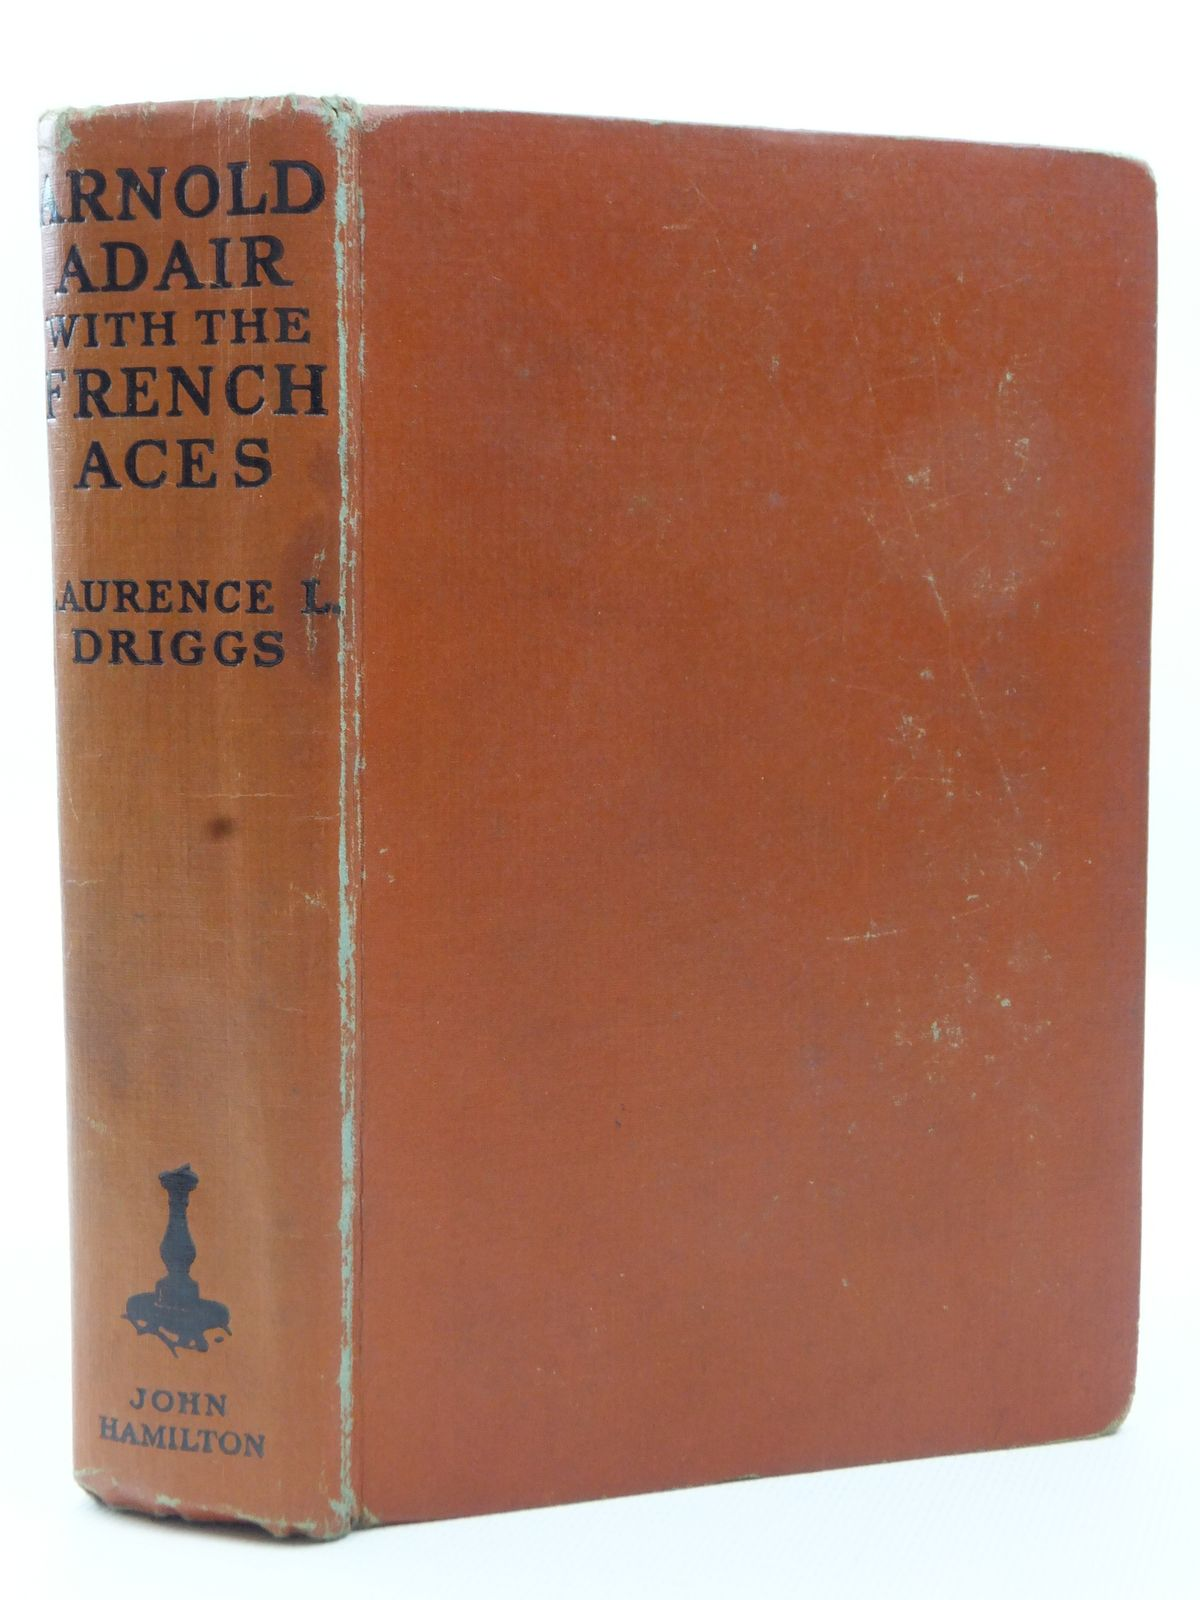 Photo of ARNOLD ADAIR WITH THE FRENCH ACES written by Driggs, Laurence published by John Hamilton Ltd. (STOCK CODE: 2123128)  for sale by Stella & Rose's Books